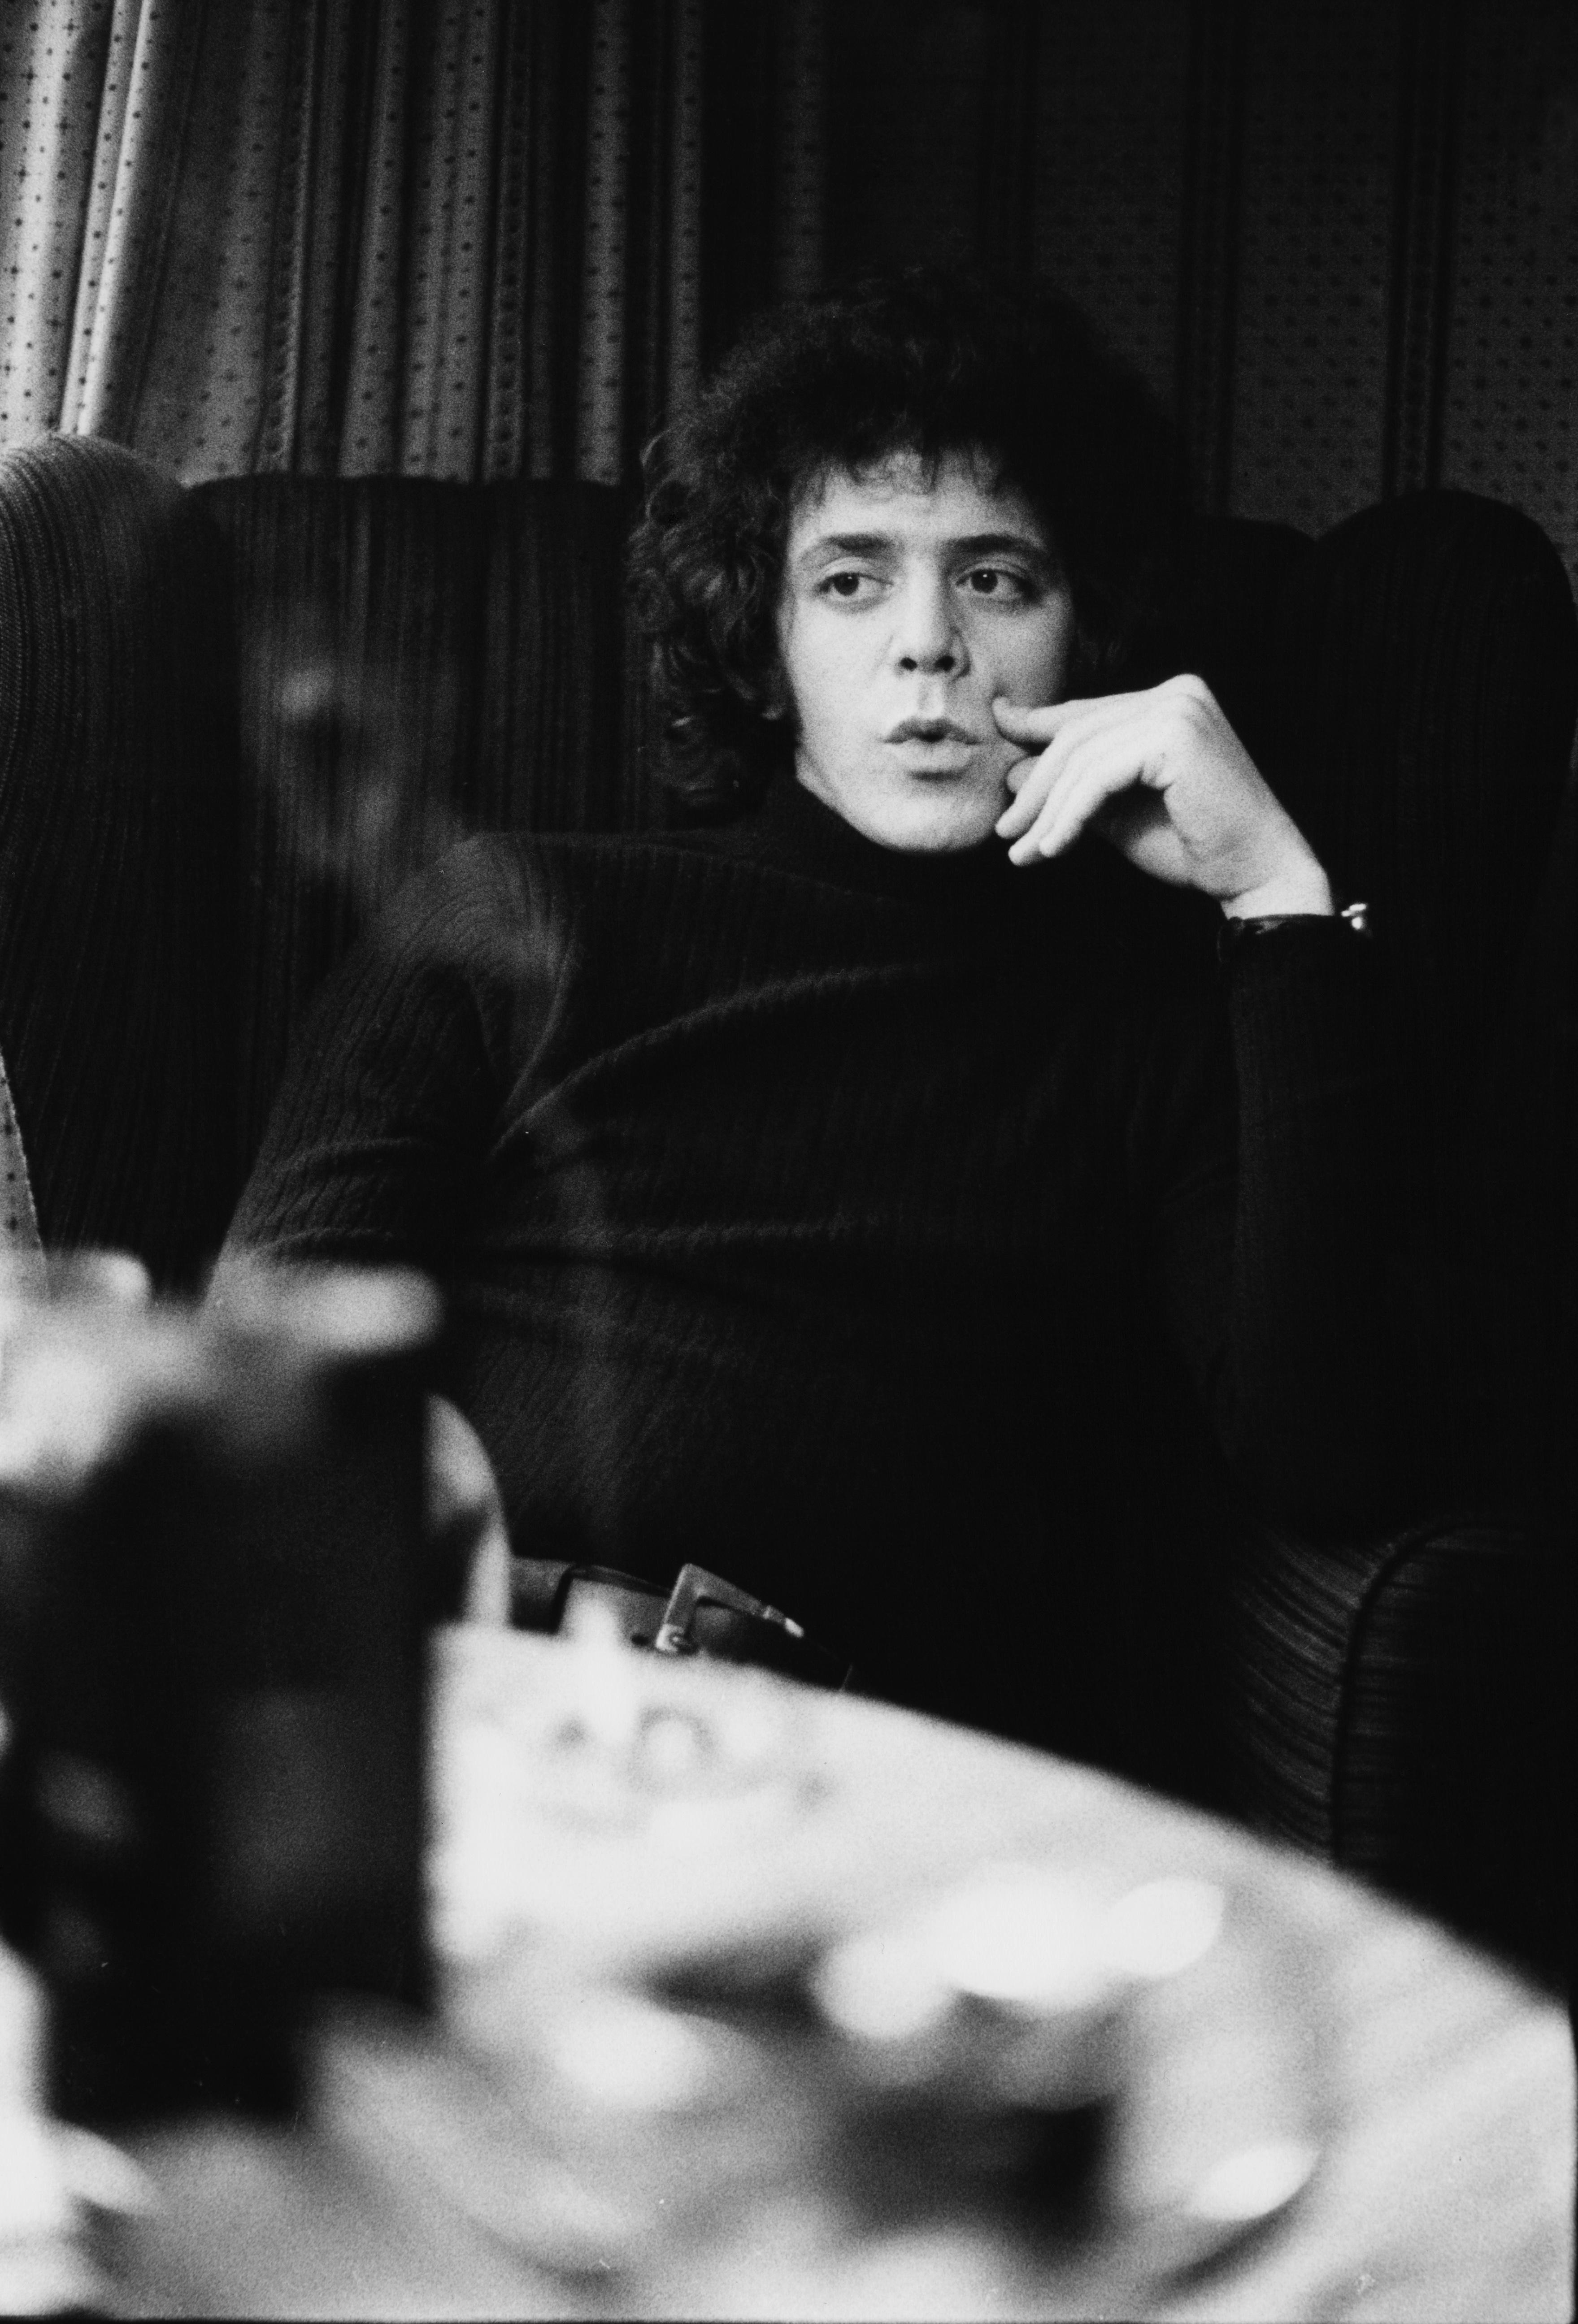 American singer-songwriter and founder member of the Velvet Underground, Lou Reed (Getty Images)